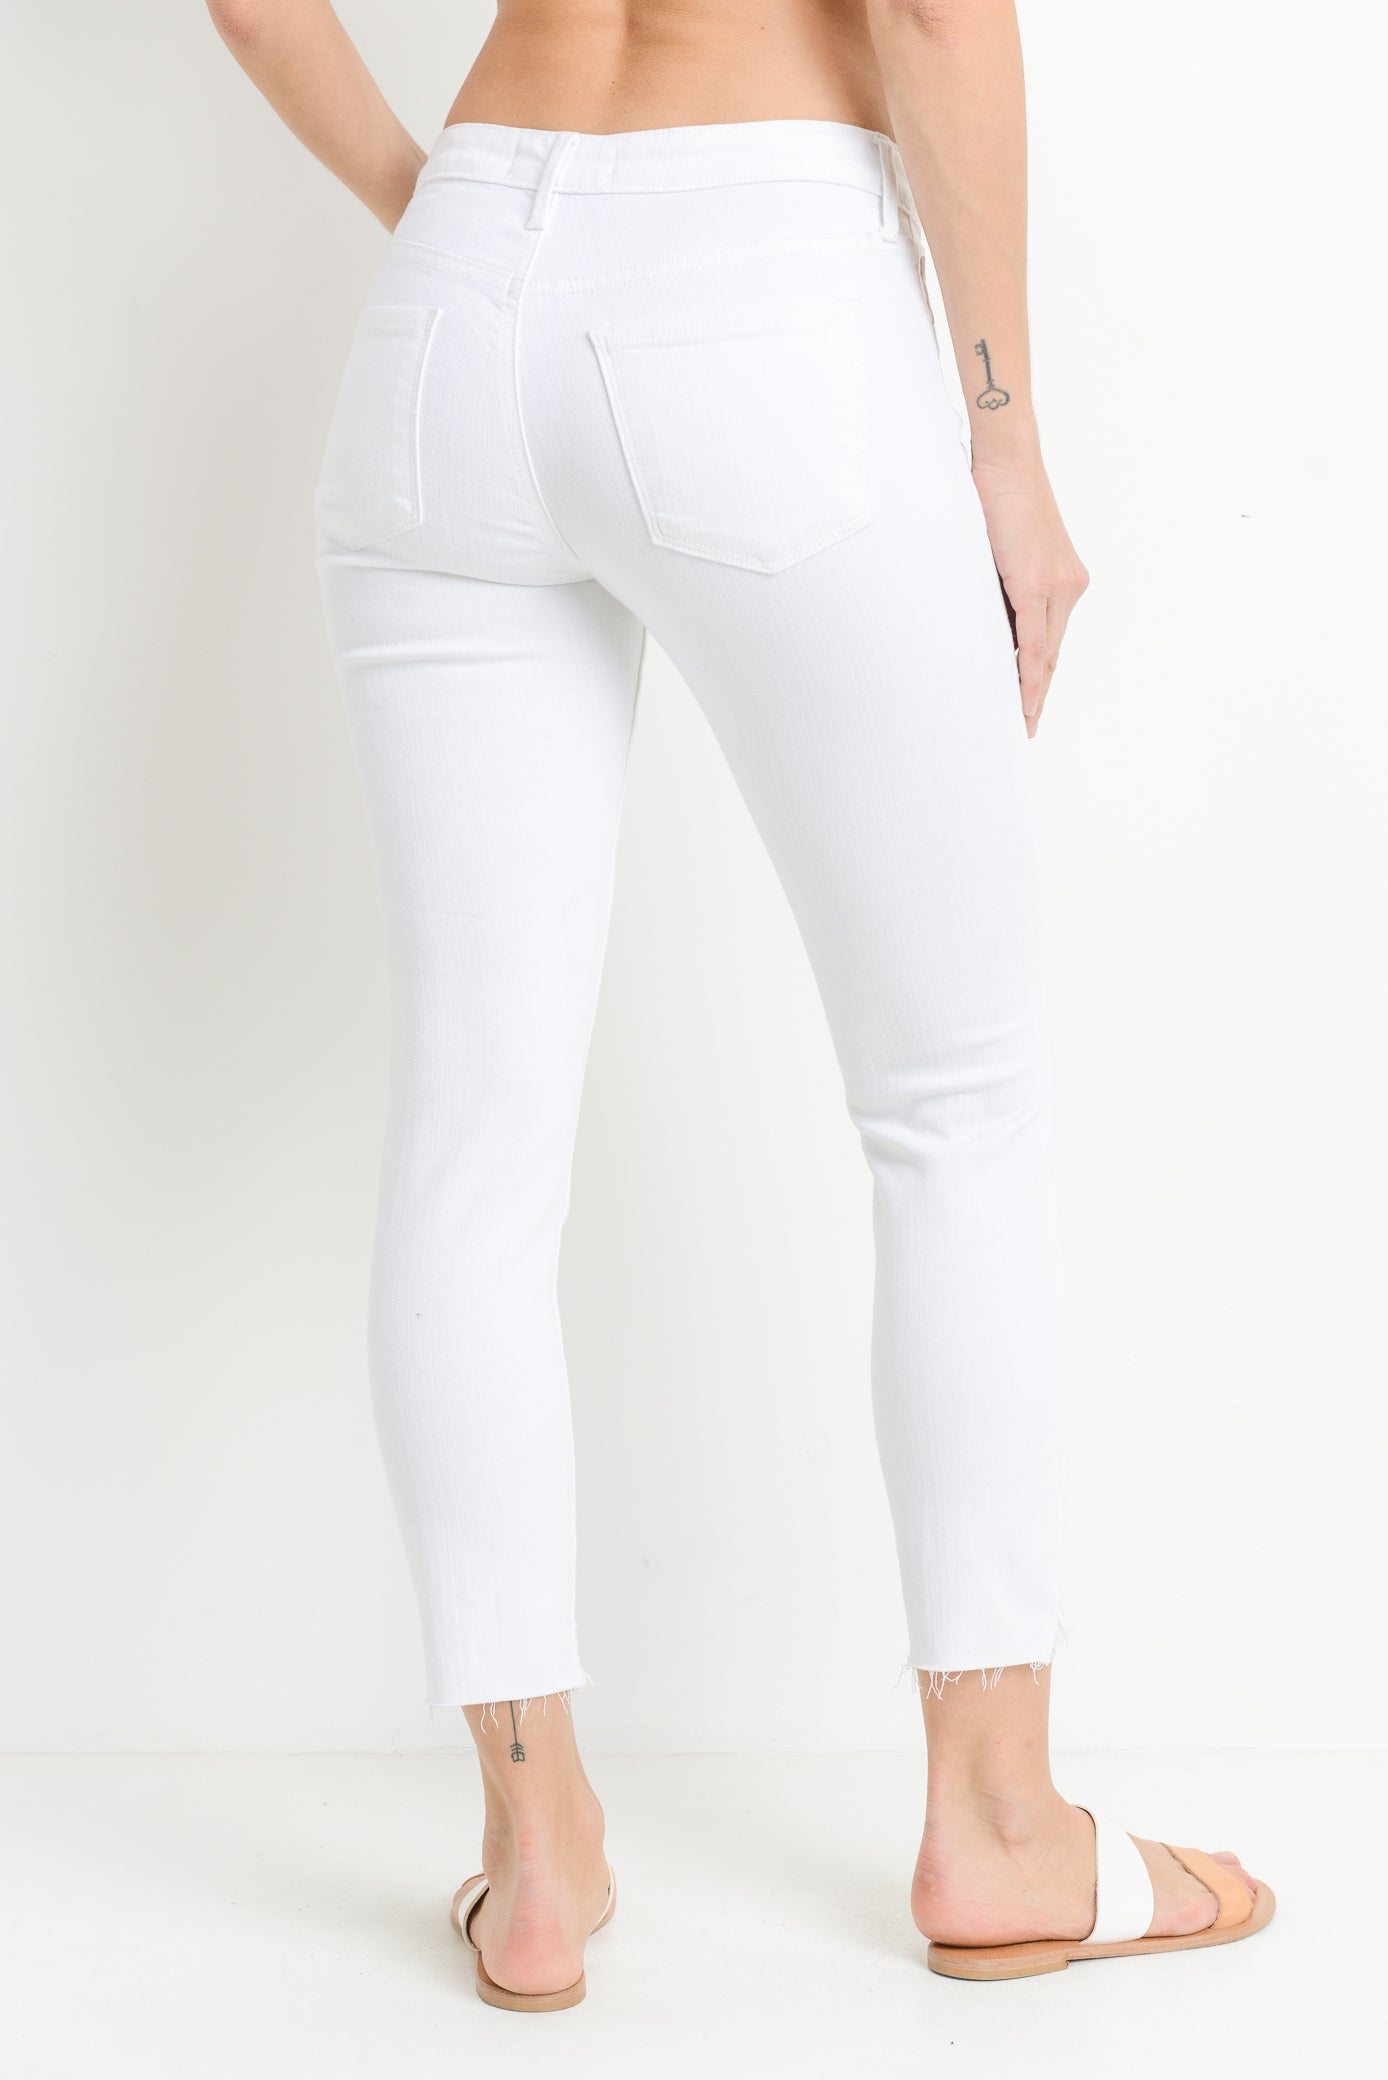 White Destroyed Hem Crop Skinny Jeans